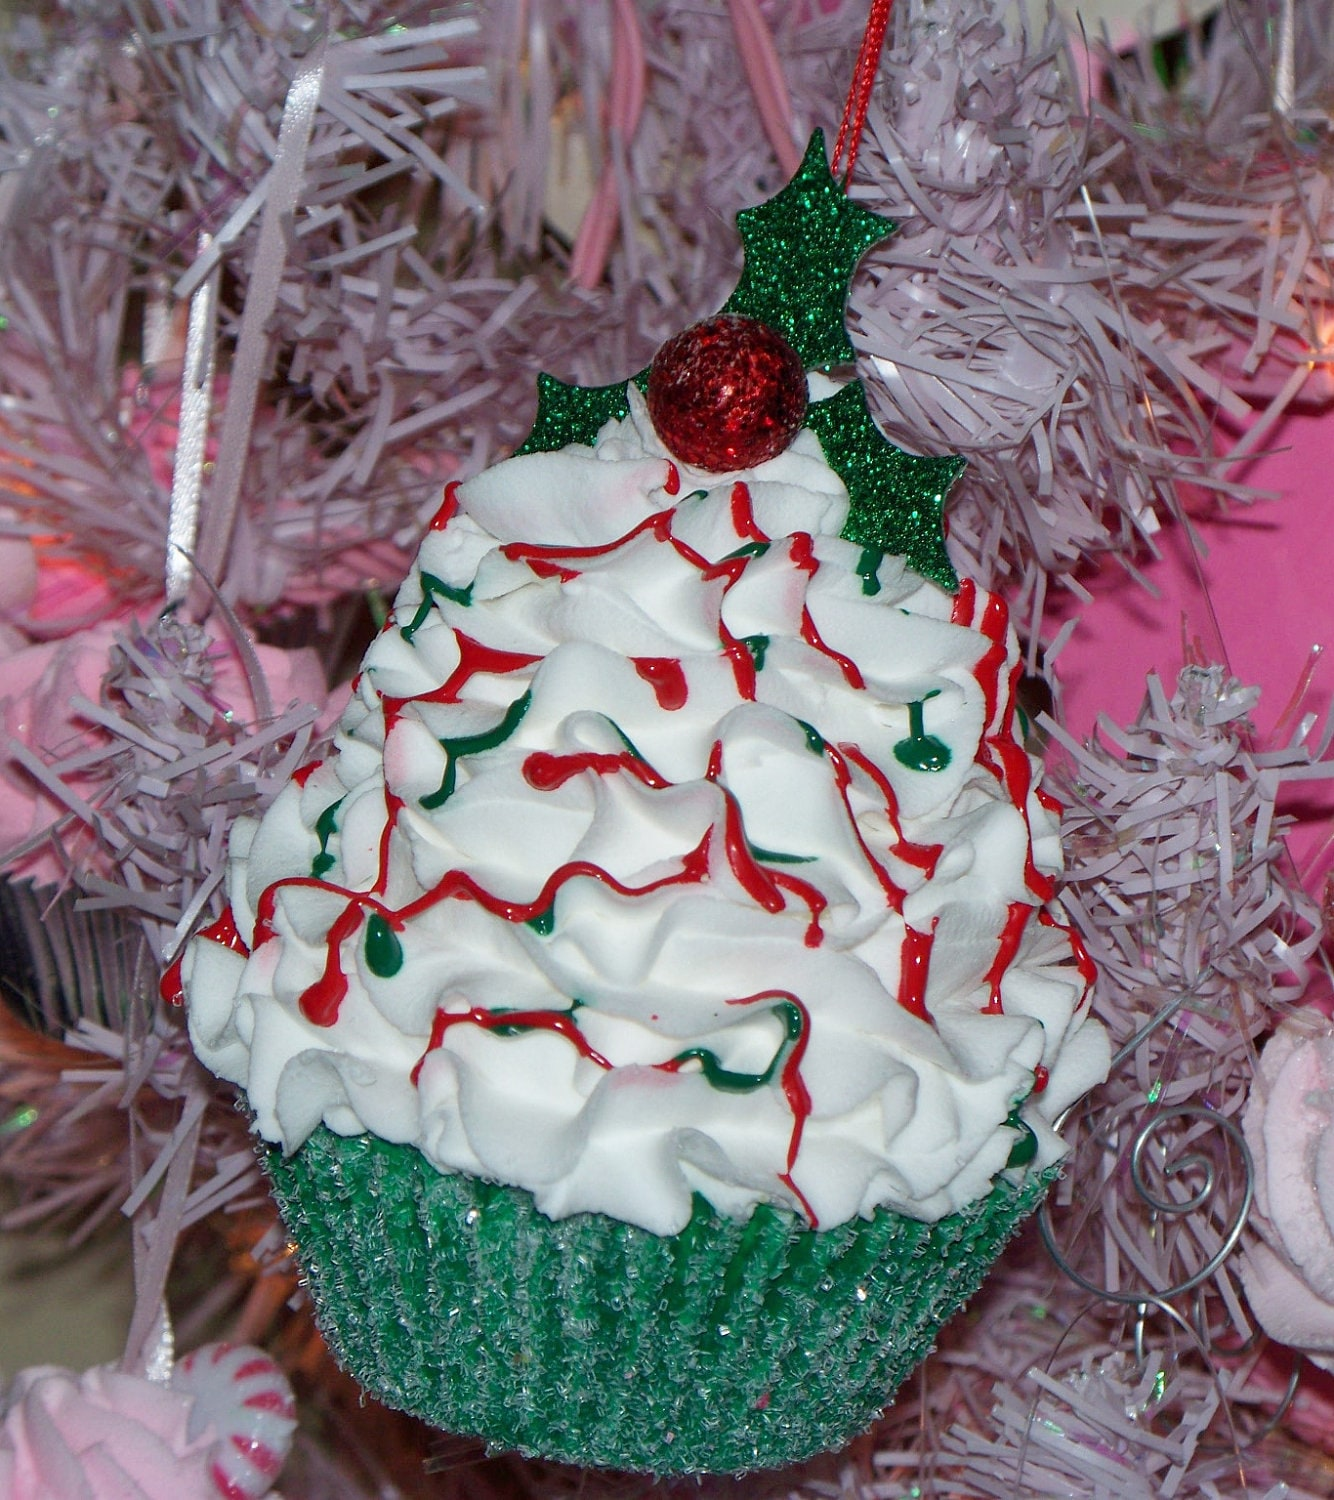 One Standard Holly Berry Fake Cupcake for Christmas Holiday Decoration Display Ornament Photo Prop